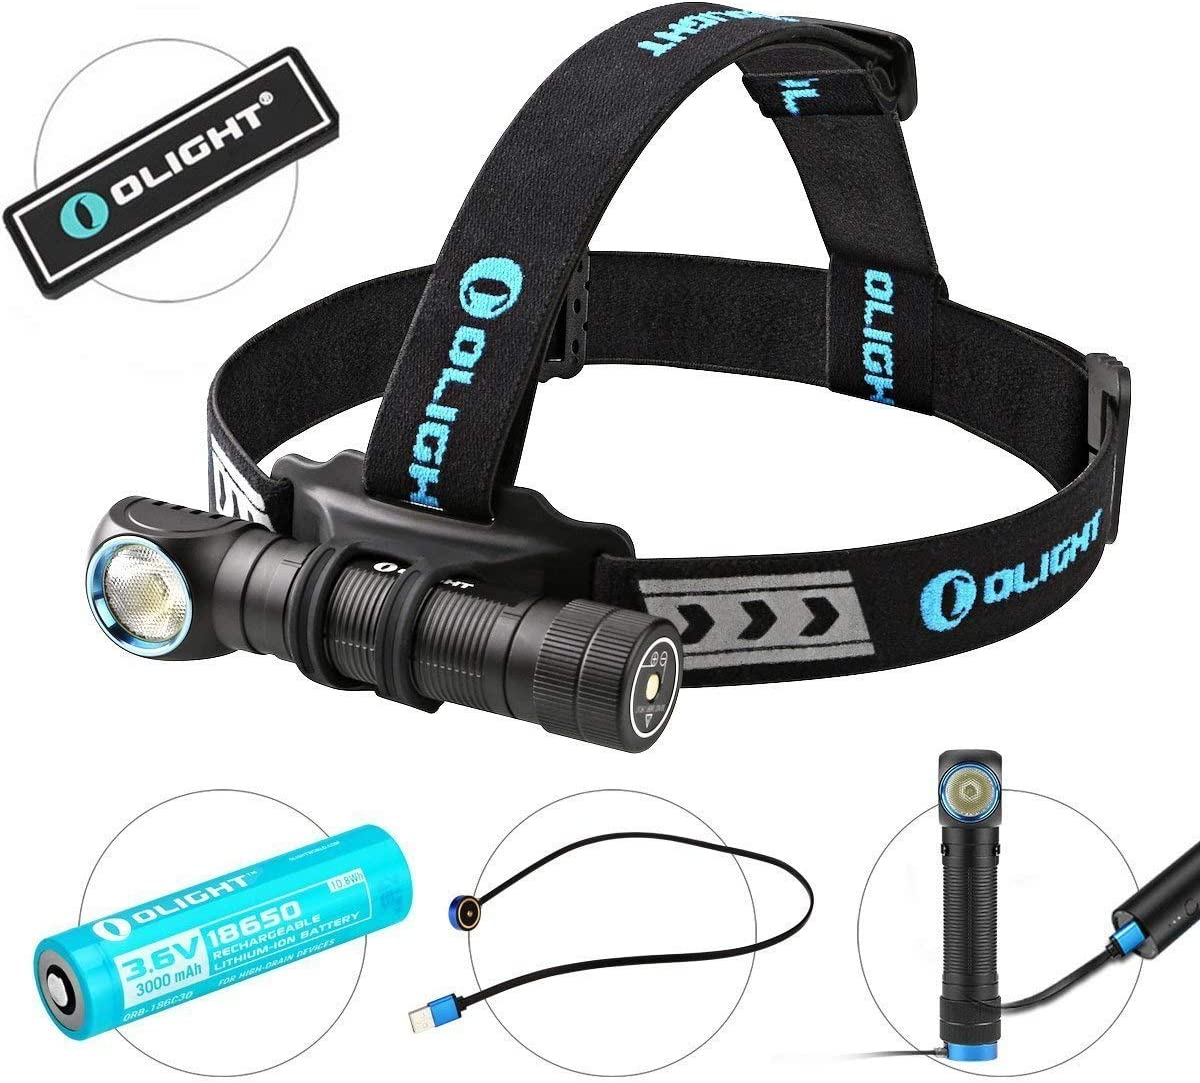 OLight H2R Cree LED Rechargeable Headlamp}